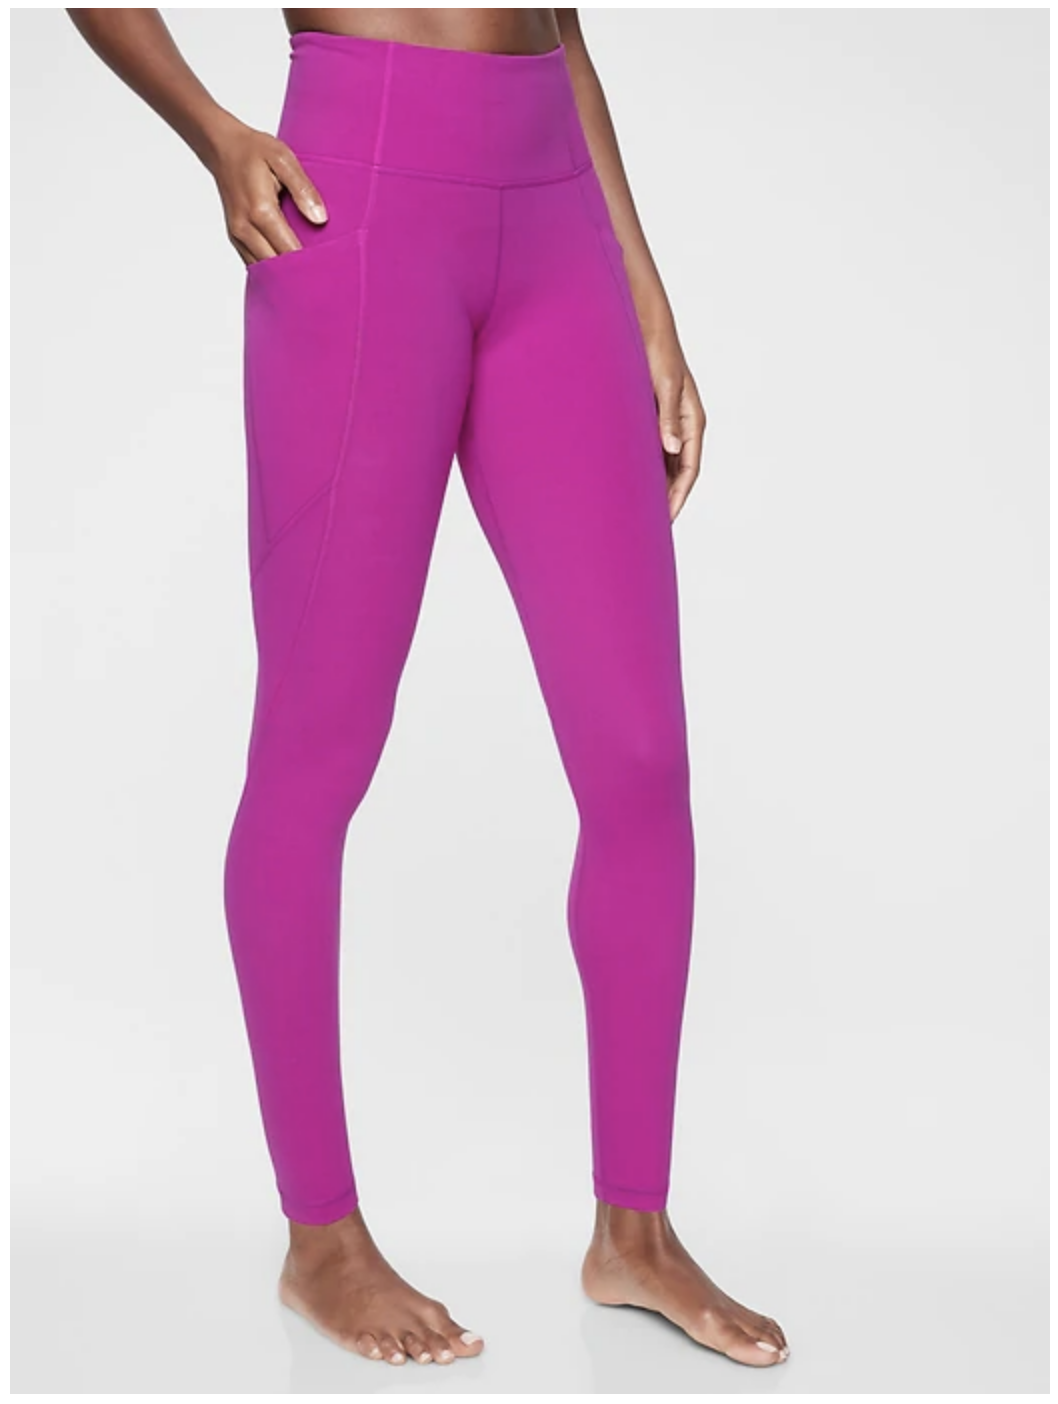 Atheleta Leggings.png